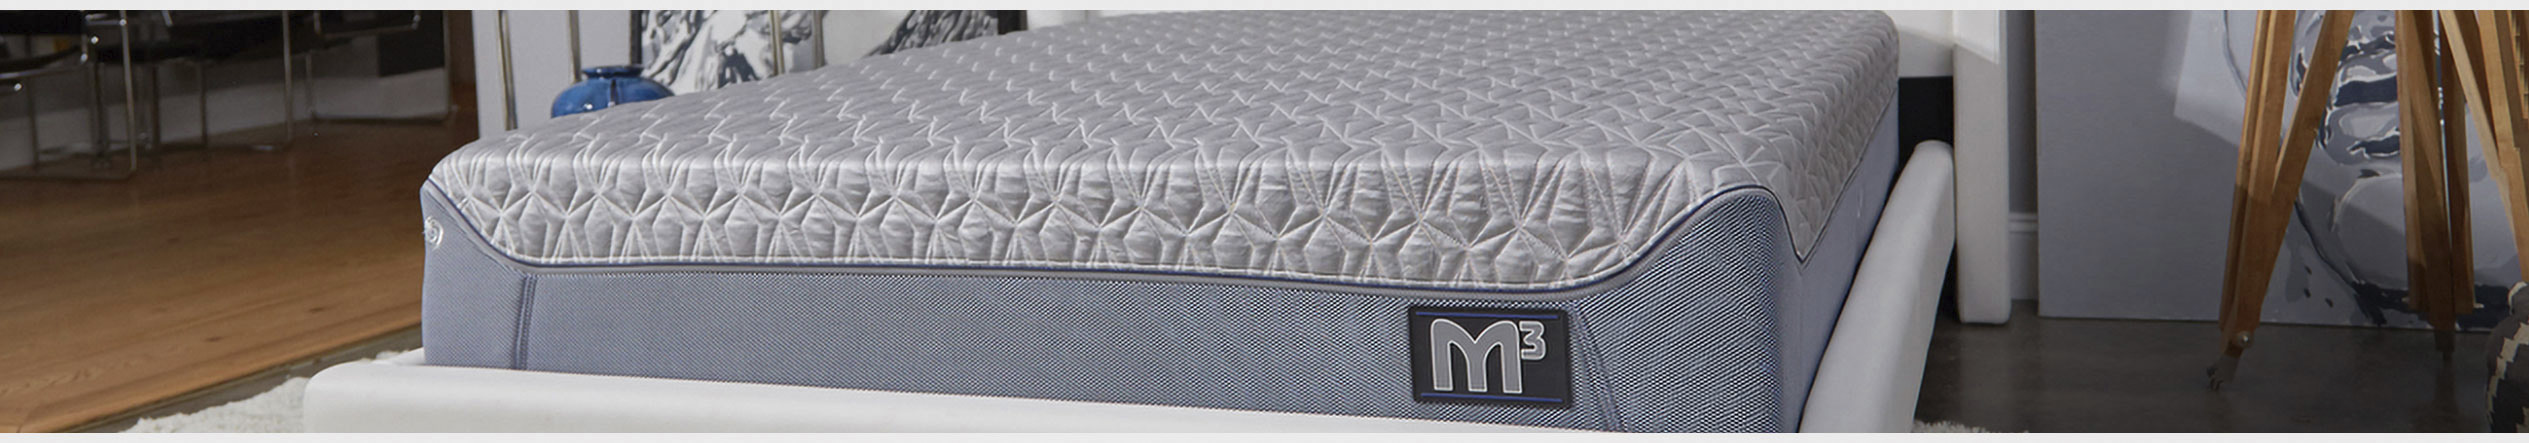 Mattresses for sale at Jordan's Furniture stores in MA, NH, ME, CT and RI